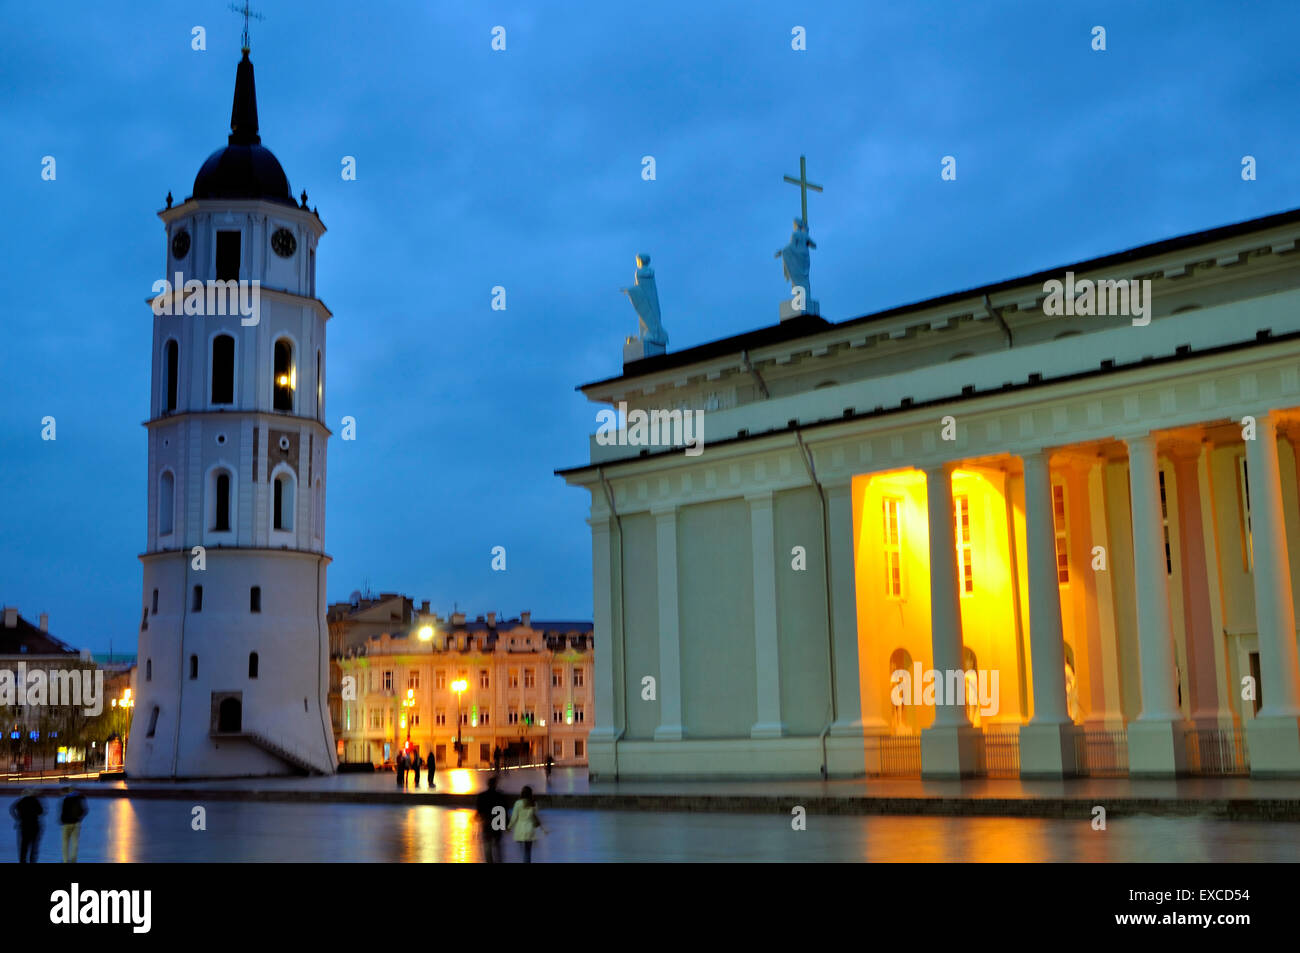 The Cathedral of Vilnius with the Gediminas's Bell Tower and the Cathedral Square at night. - Stock Image